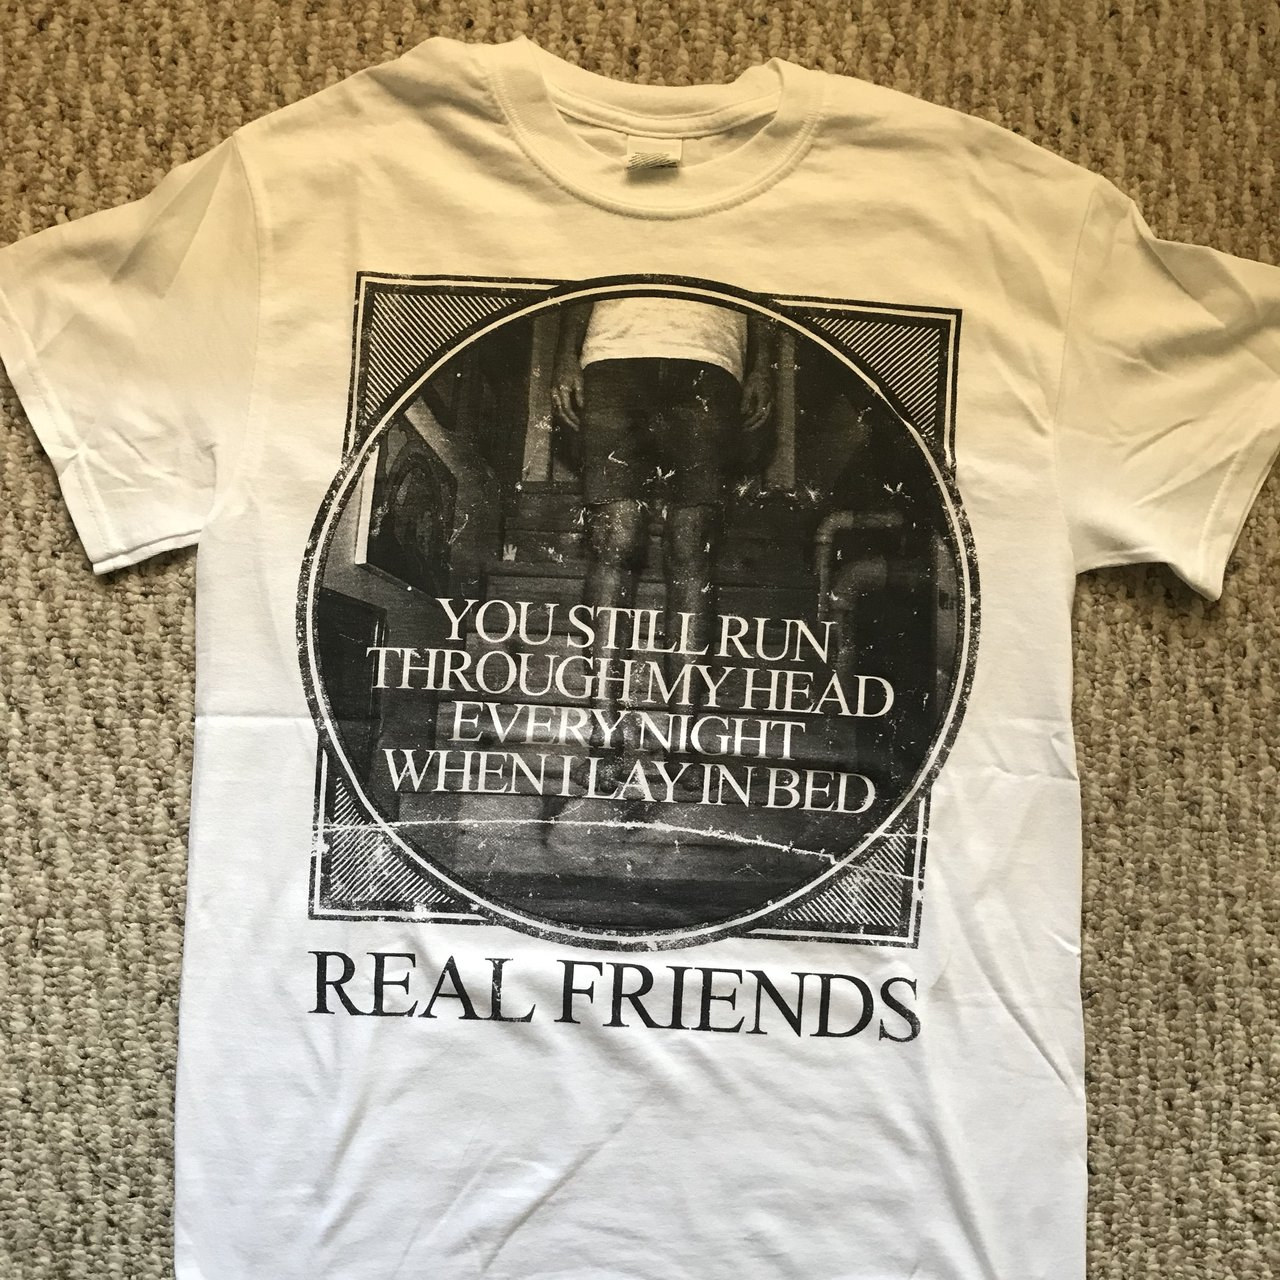 426ec896bdee2e Real Friends shirt Size small Never worn Printed